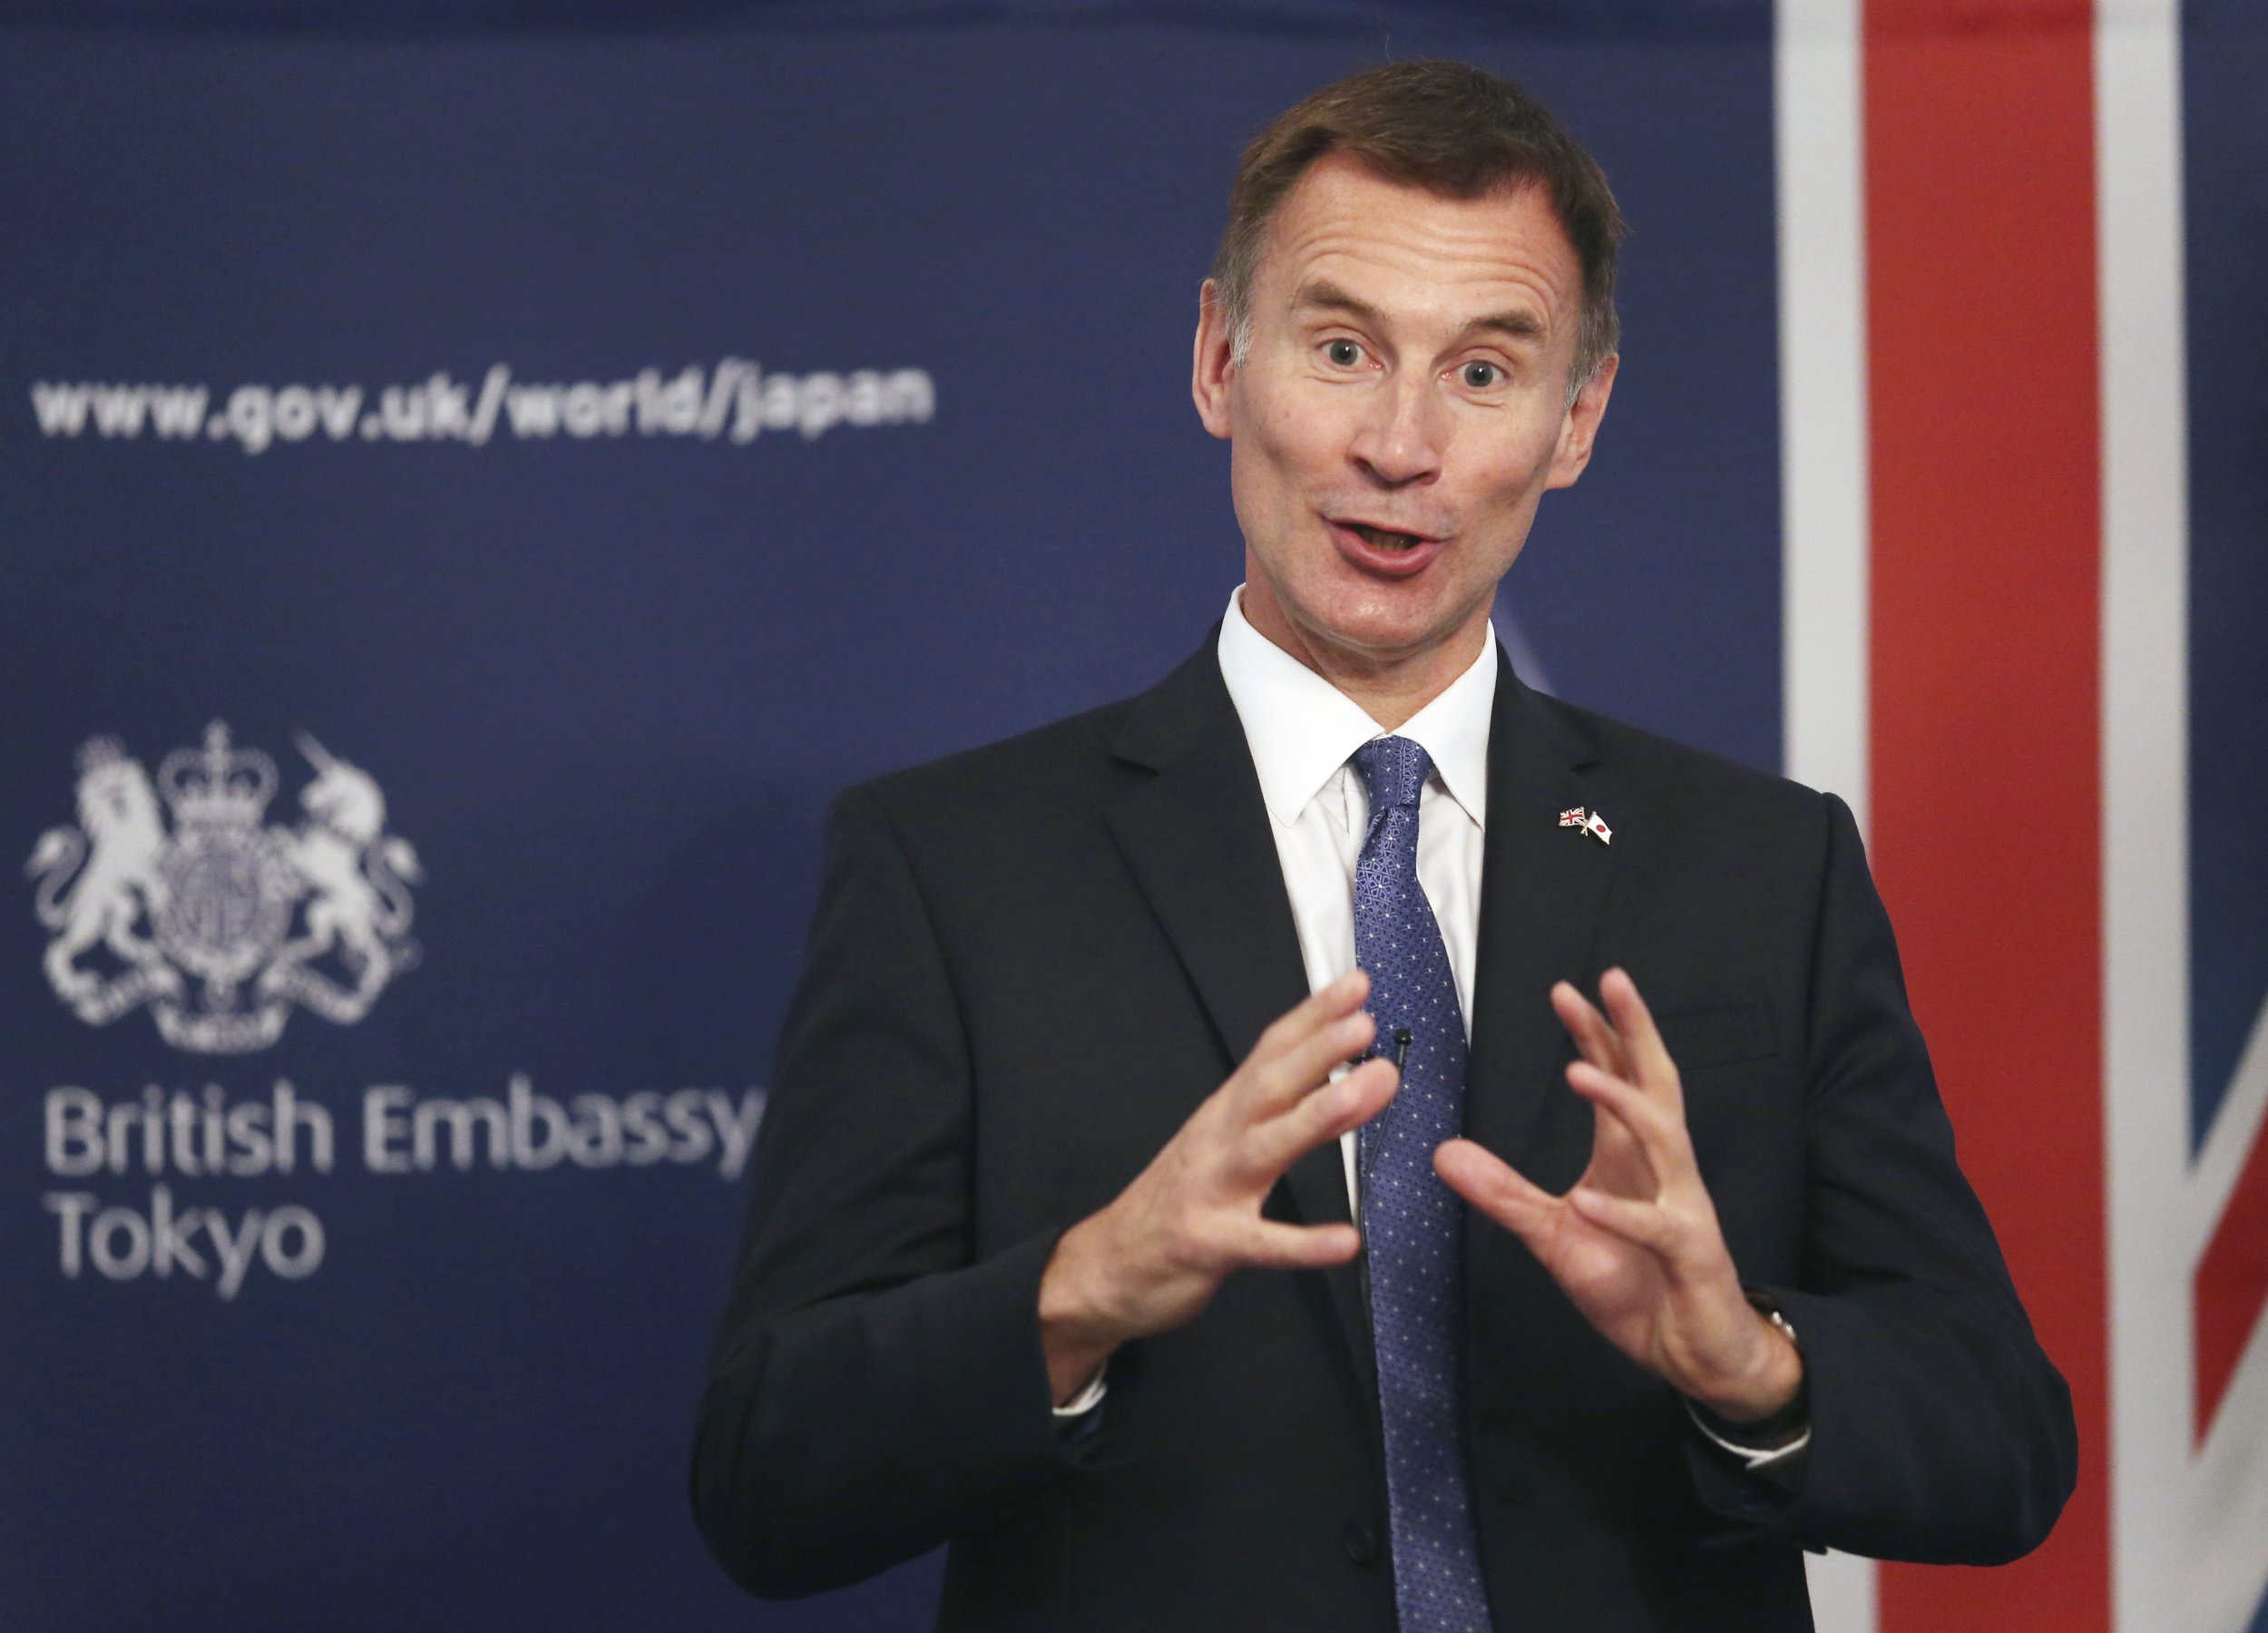 Jeremy Hunt becomes first UK minister to speak Japanese in Japan